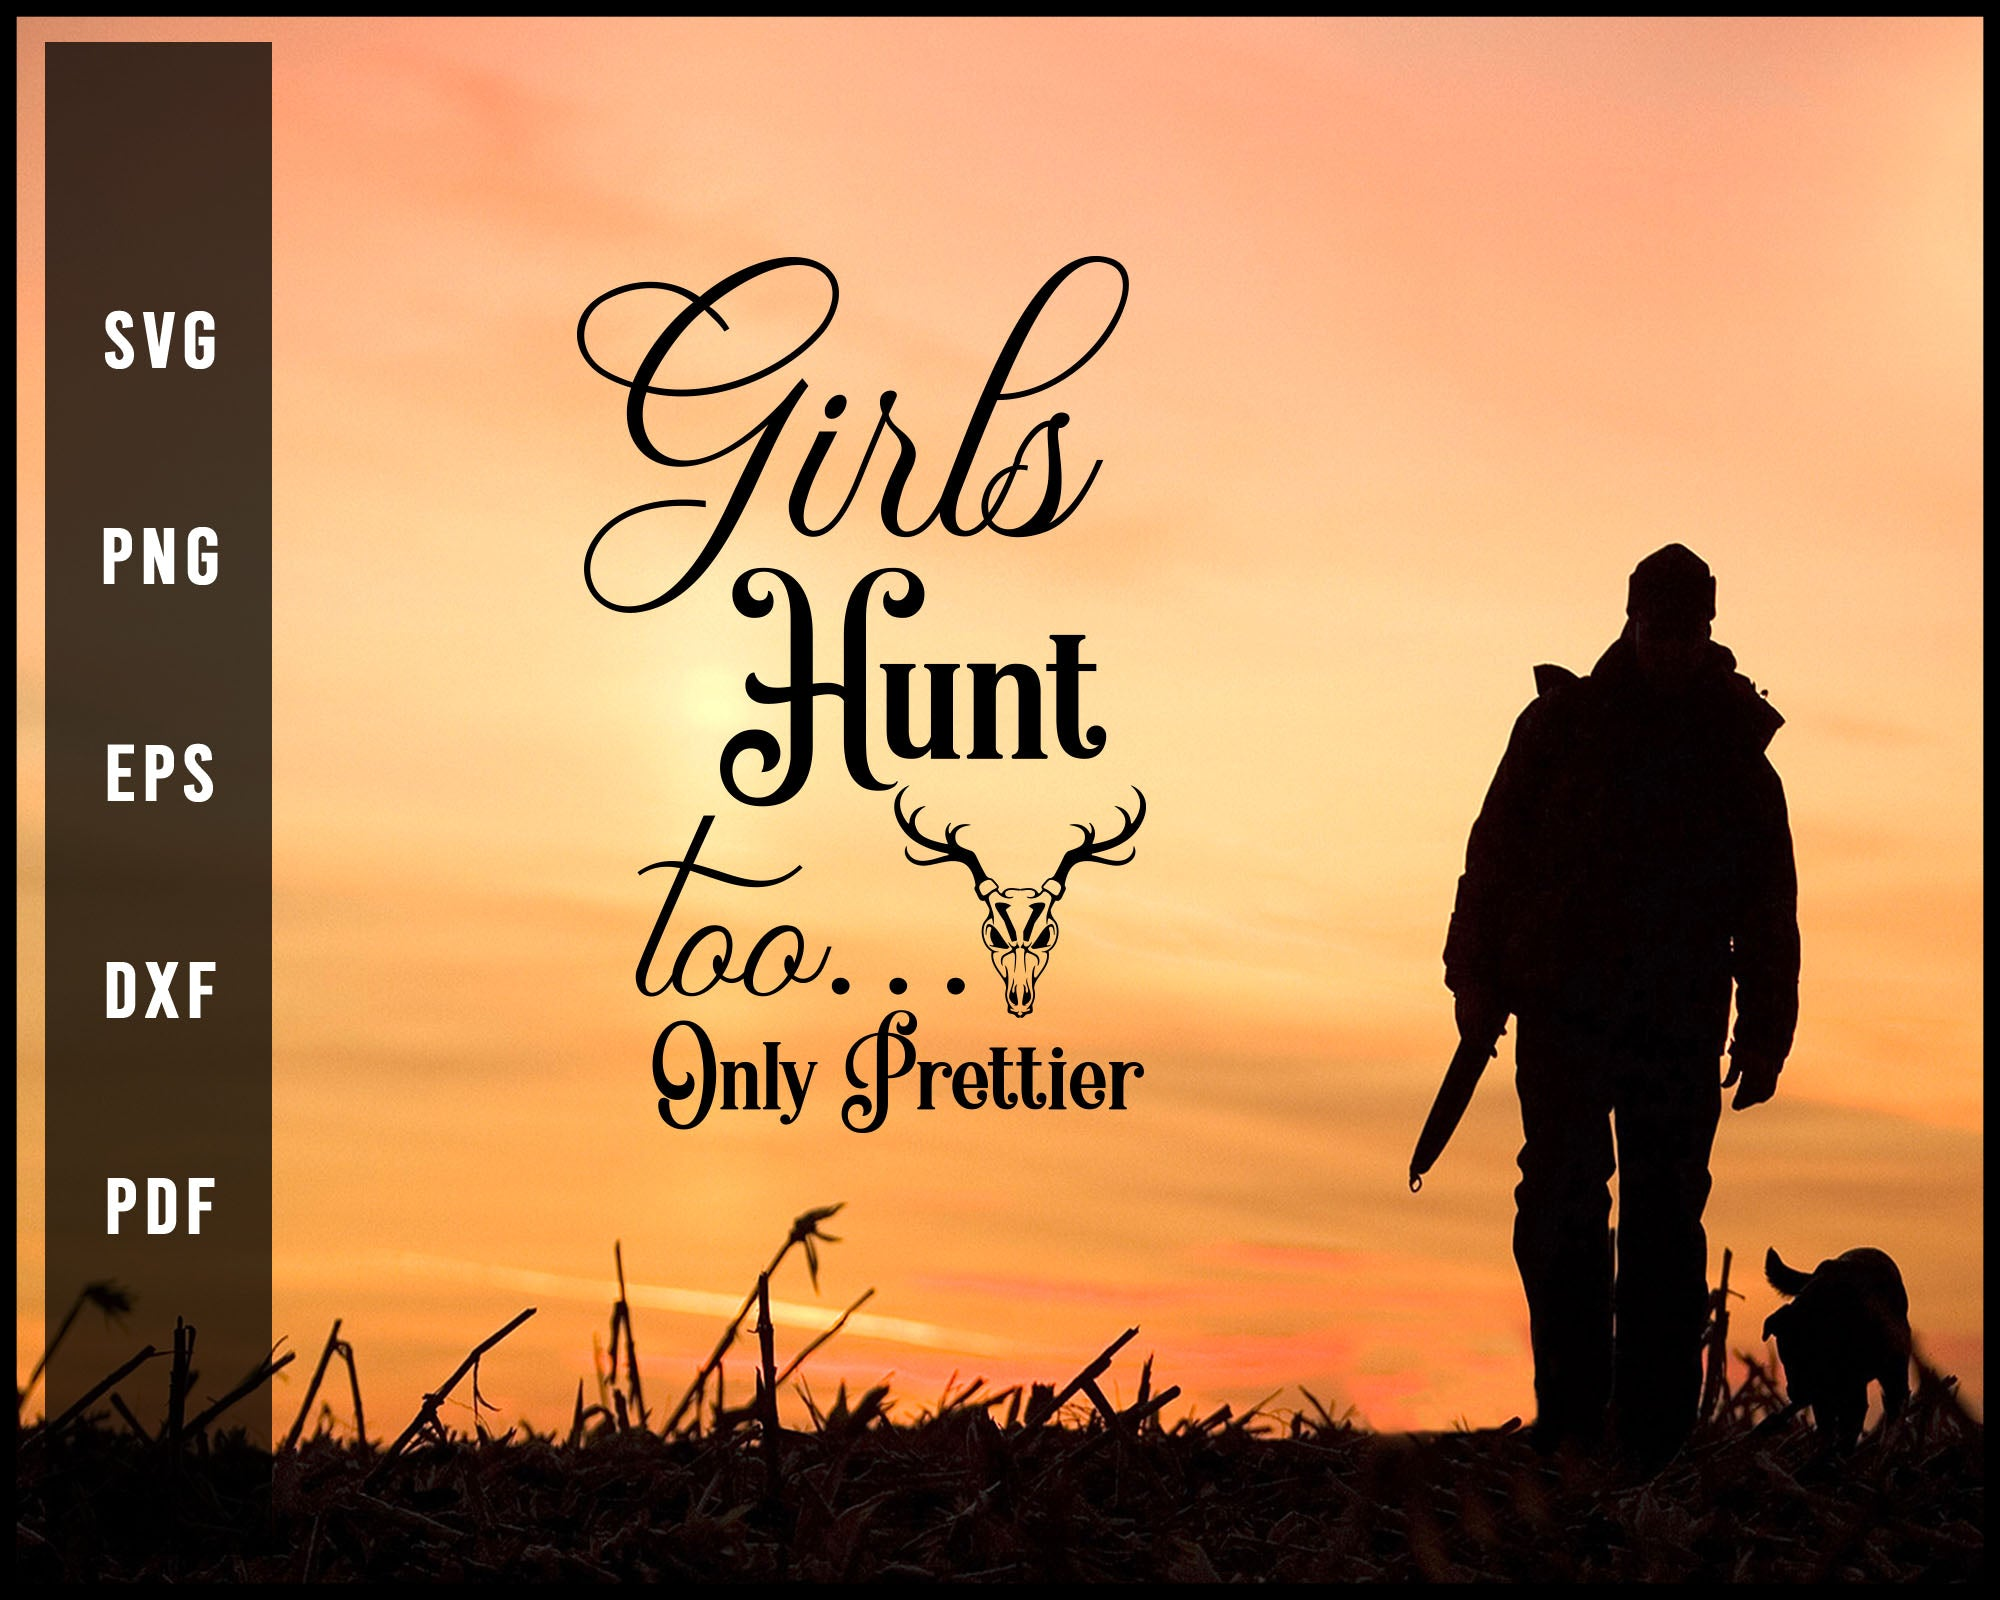 Girls Hunt Too Daly Prettier svg png Silhouette Designs For Cricut And Printable Files